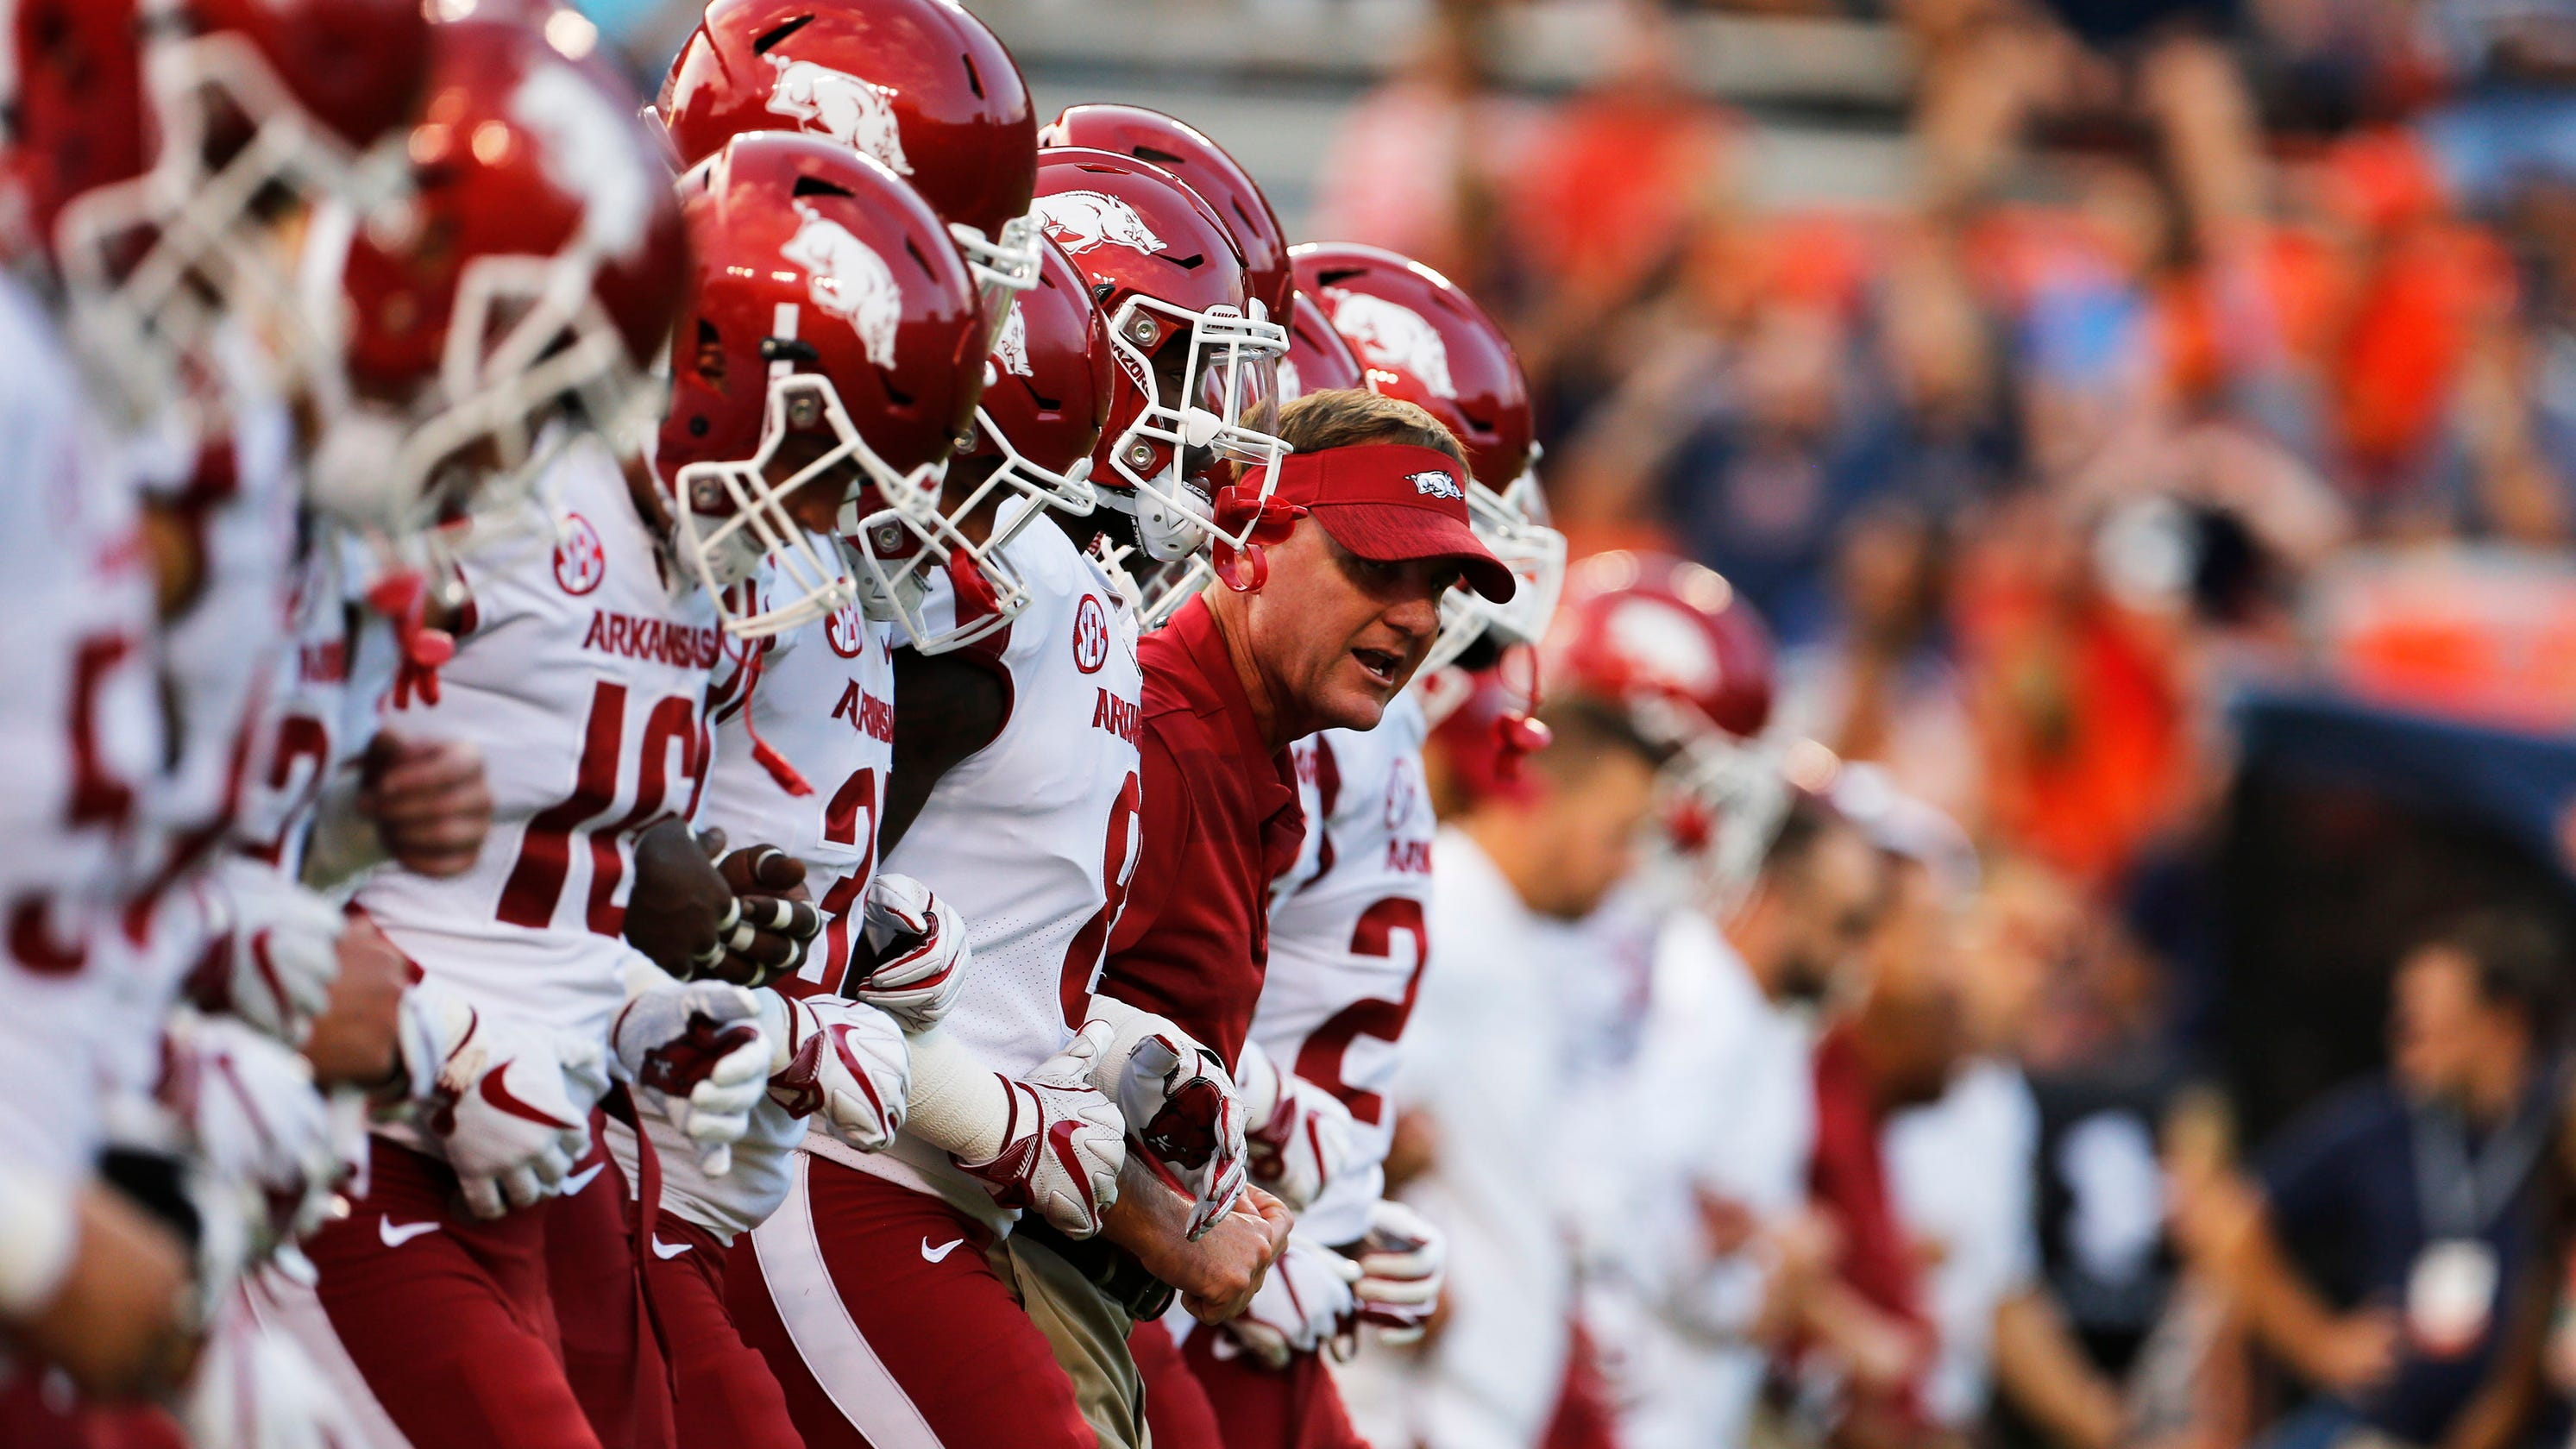 Dallas Football Schedule 2020 Arkansas releases 2020 football schedule